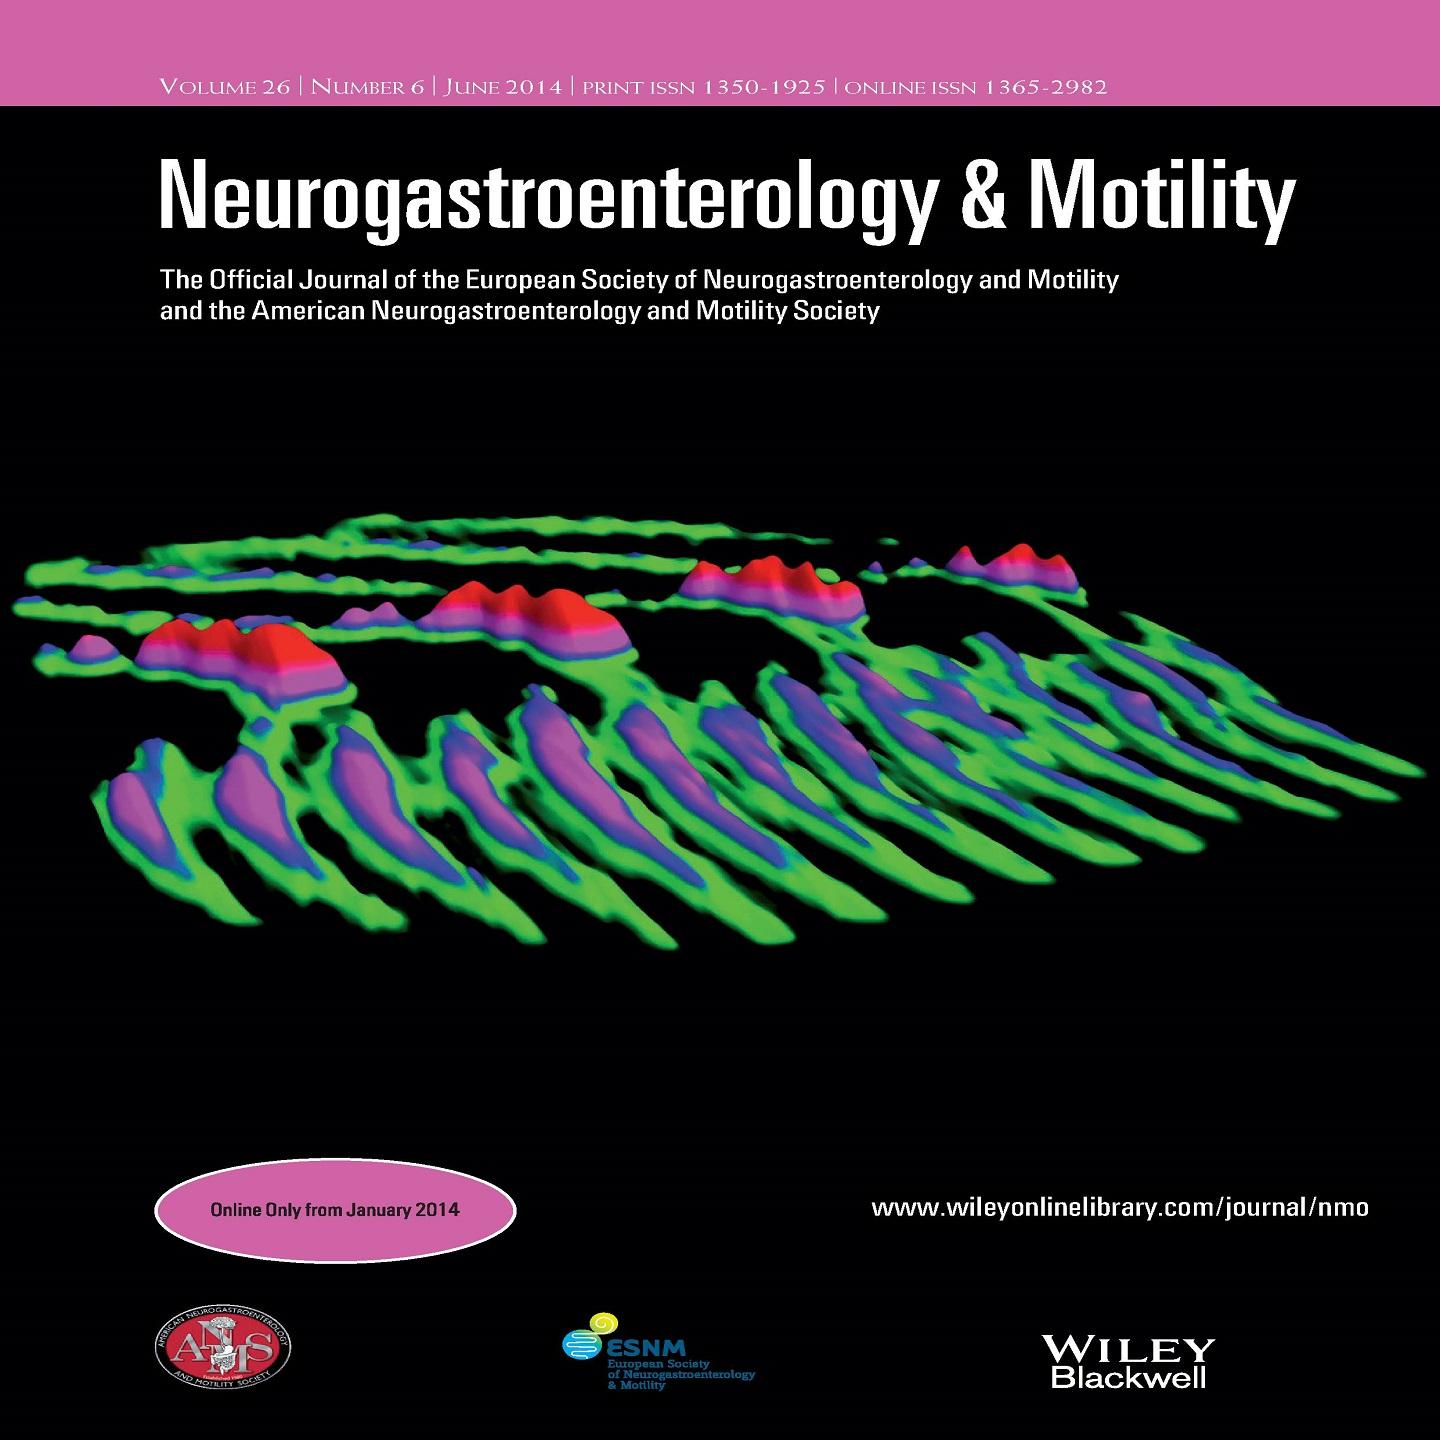 Neurogastroenterology and Motility - July 2015